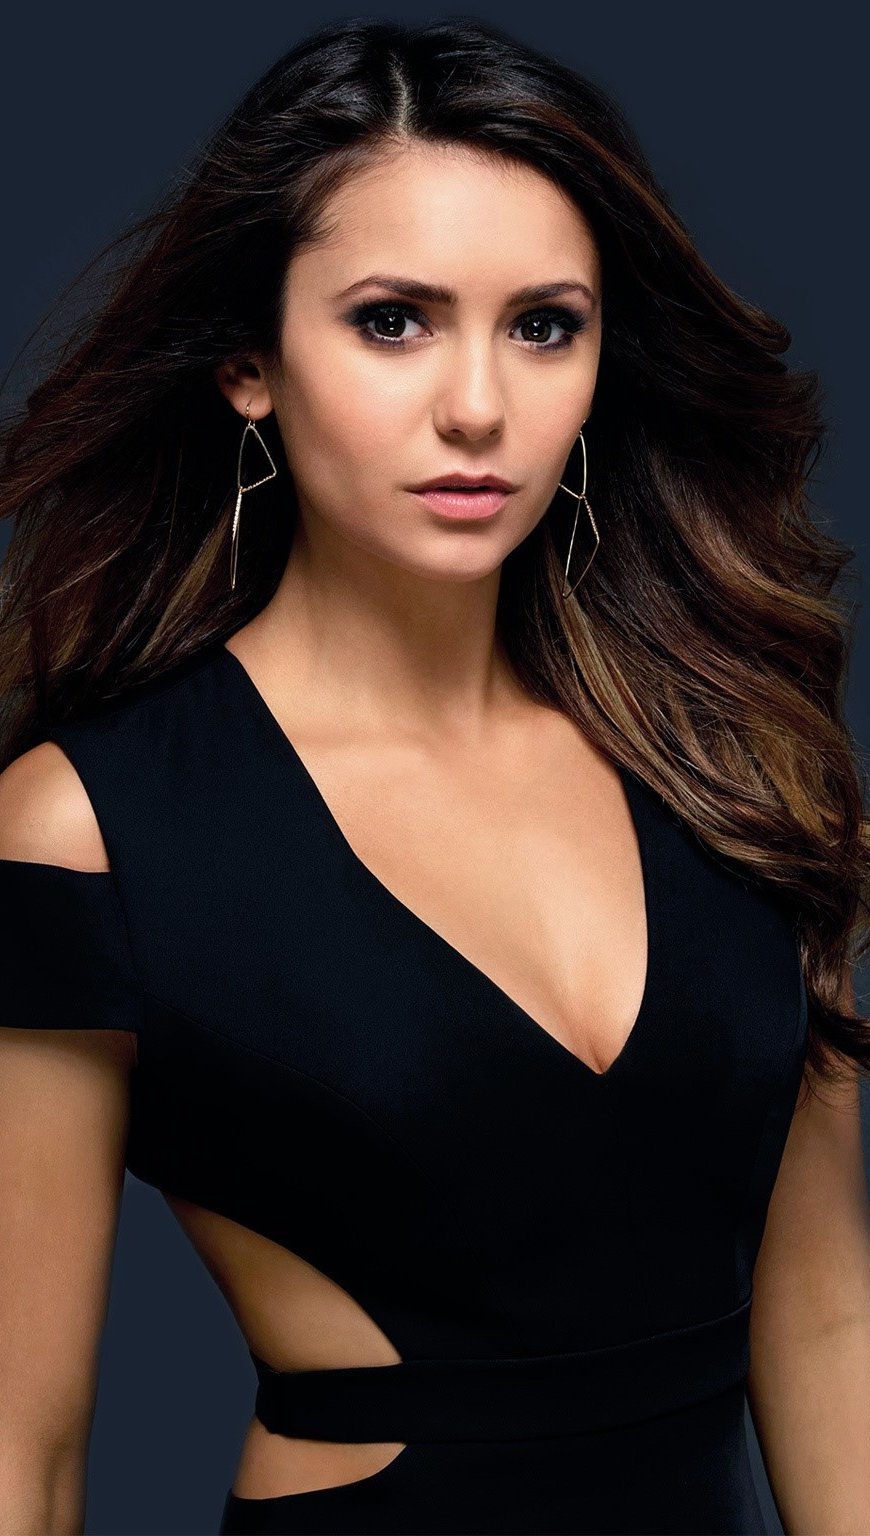 Wallpaper Nina Dobrev Vertical